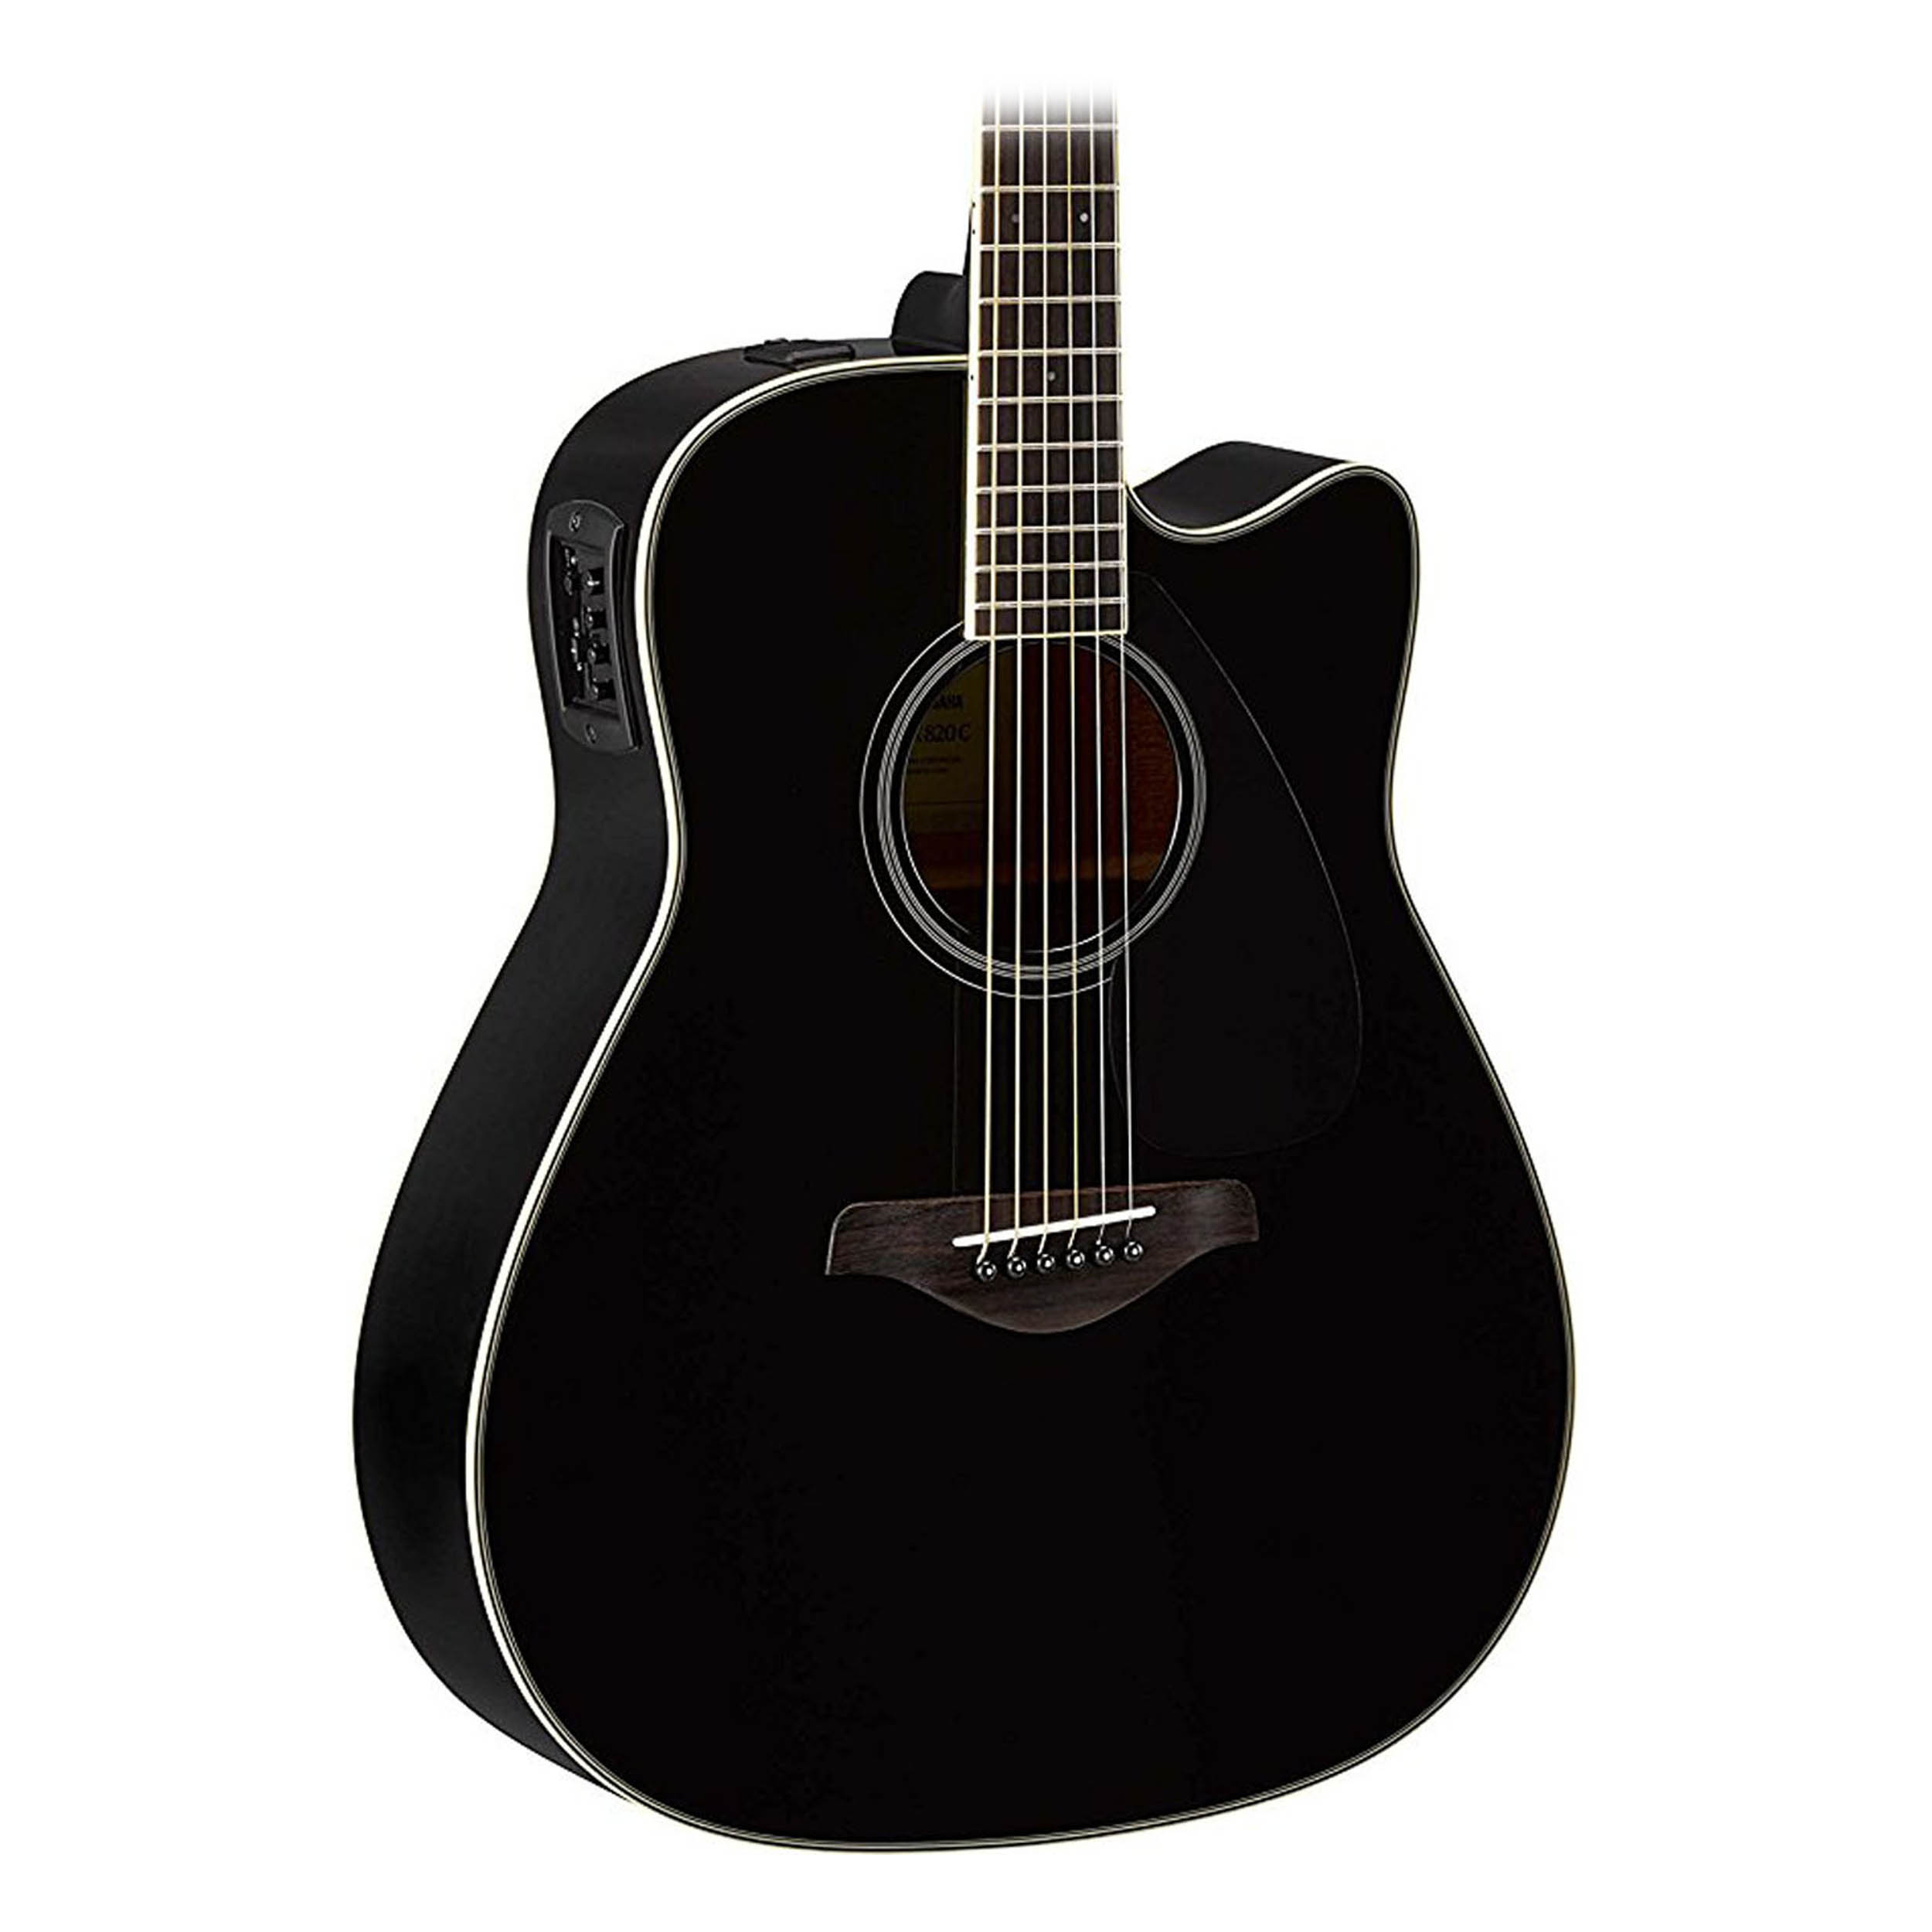 Yamaha FGX800C Acoustic-Electric Guitar in Black